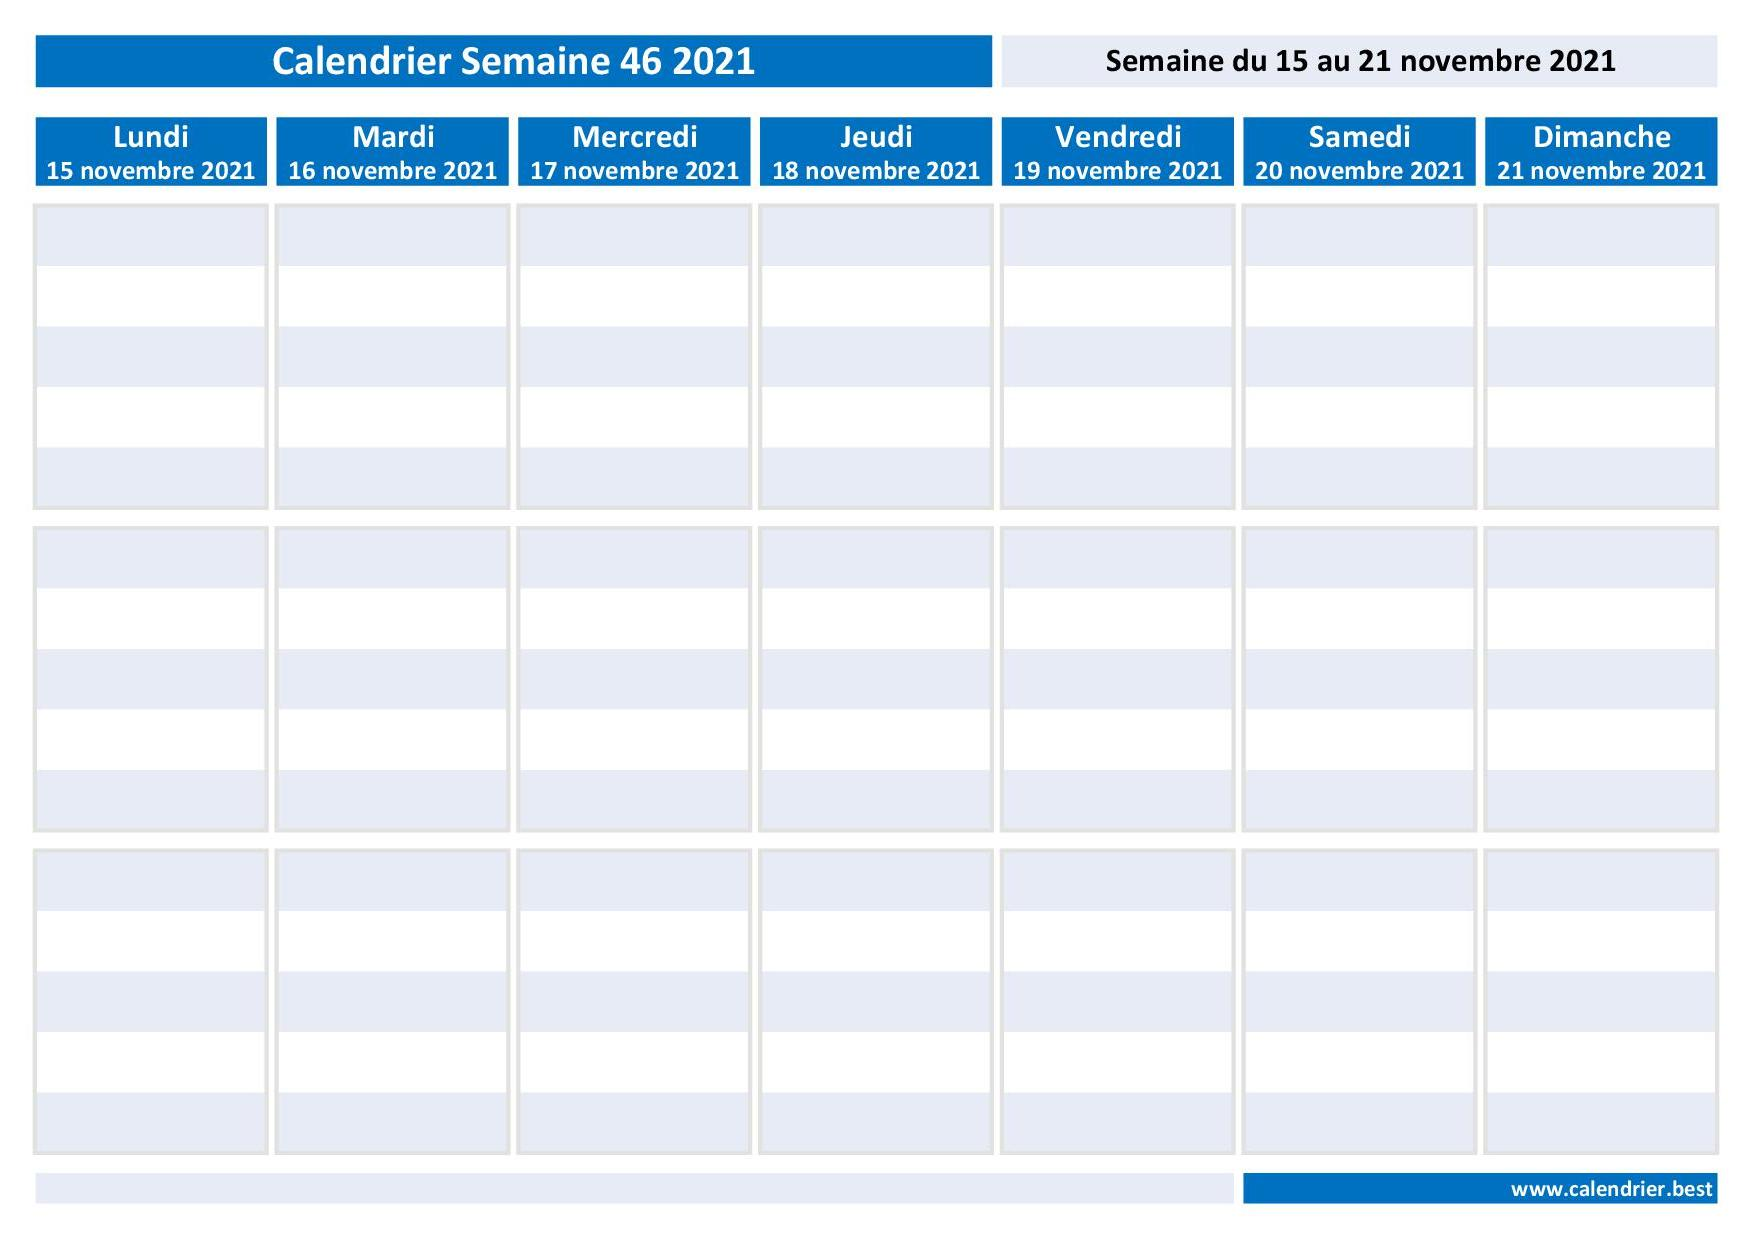 Semaine 46 2021 : dates, calendrier et planning  Calendrier.best